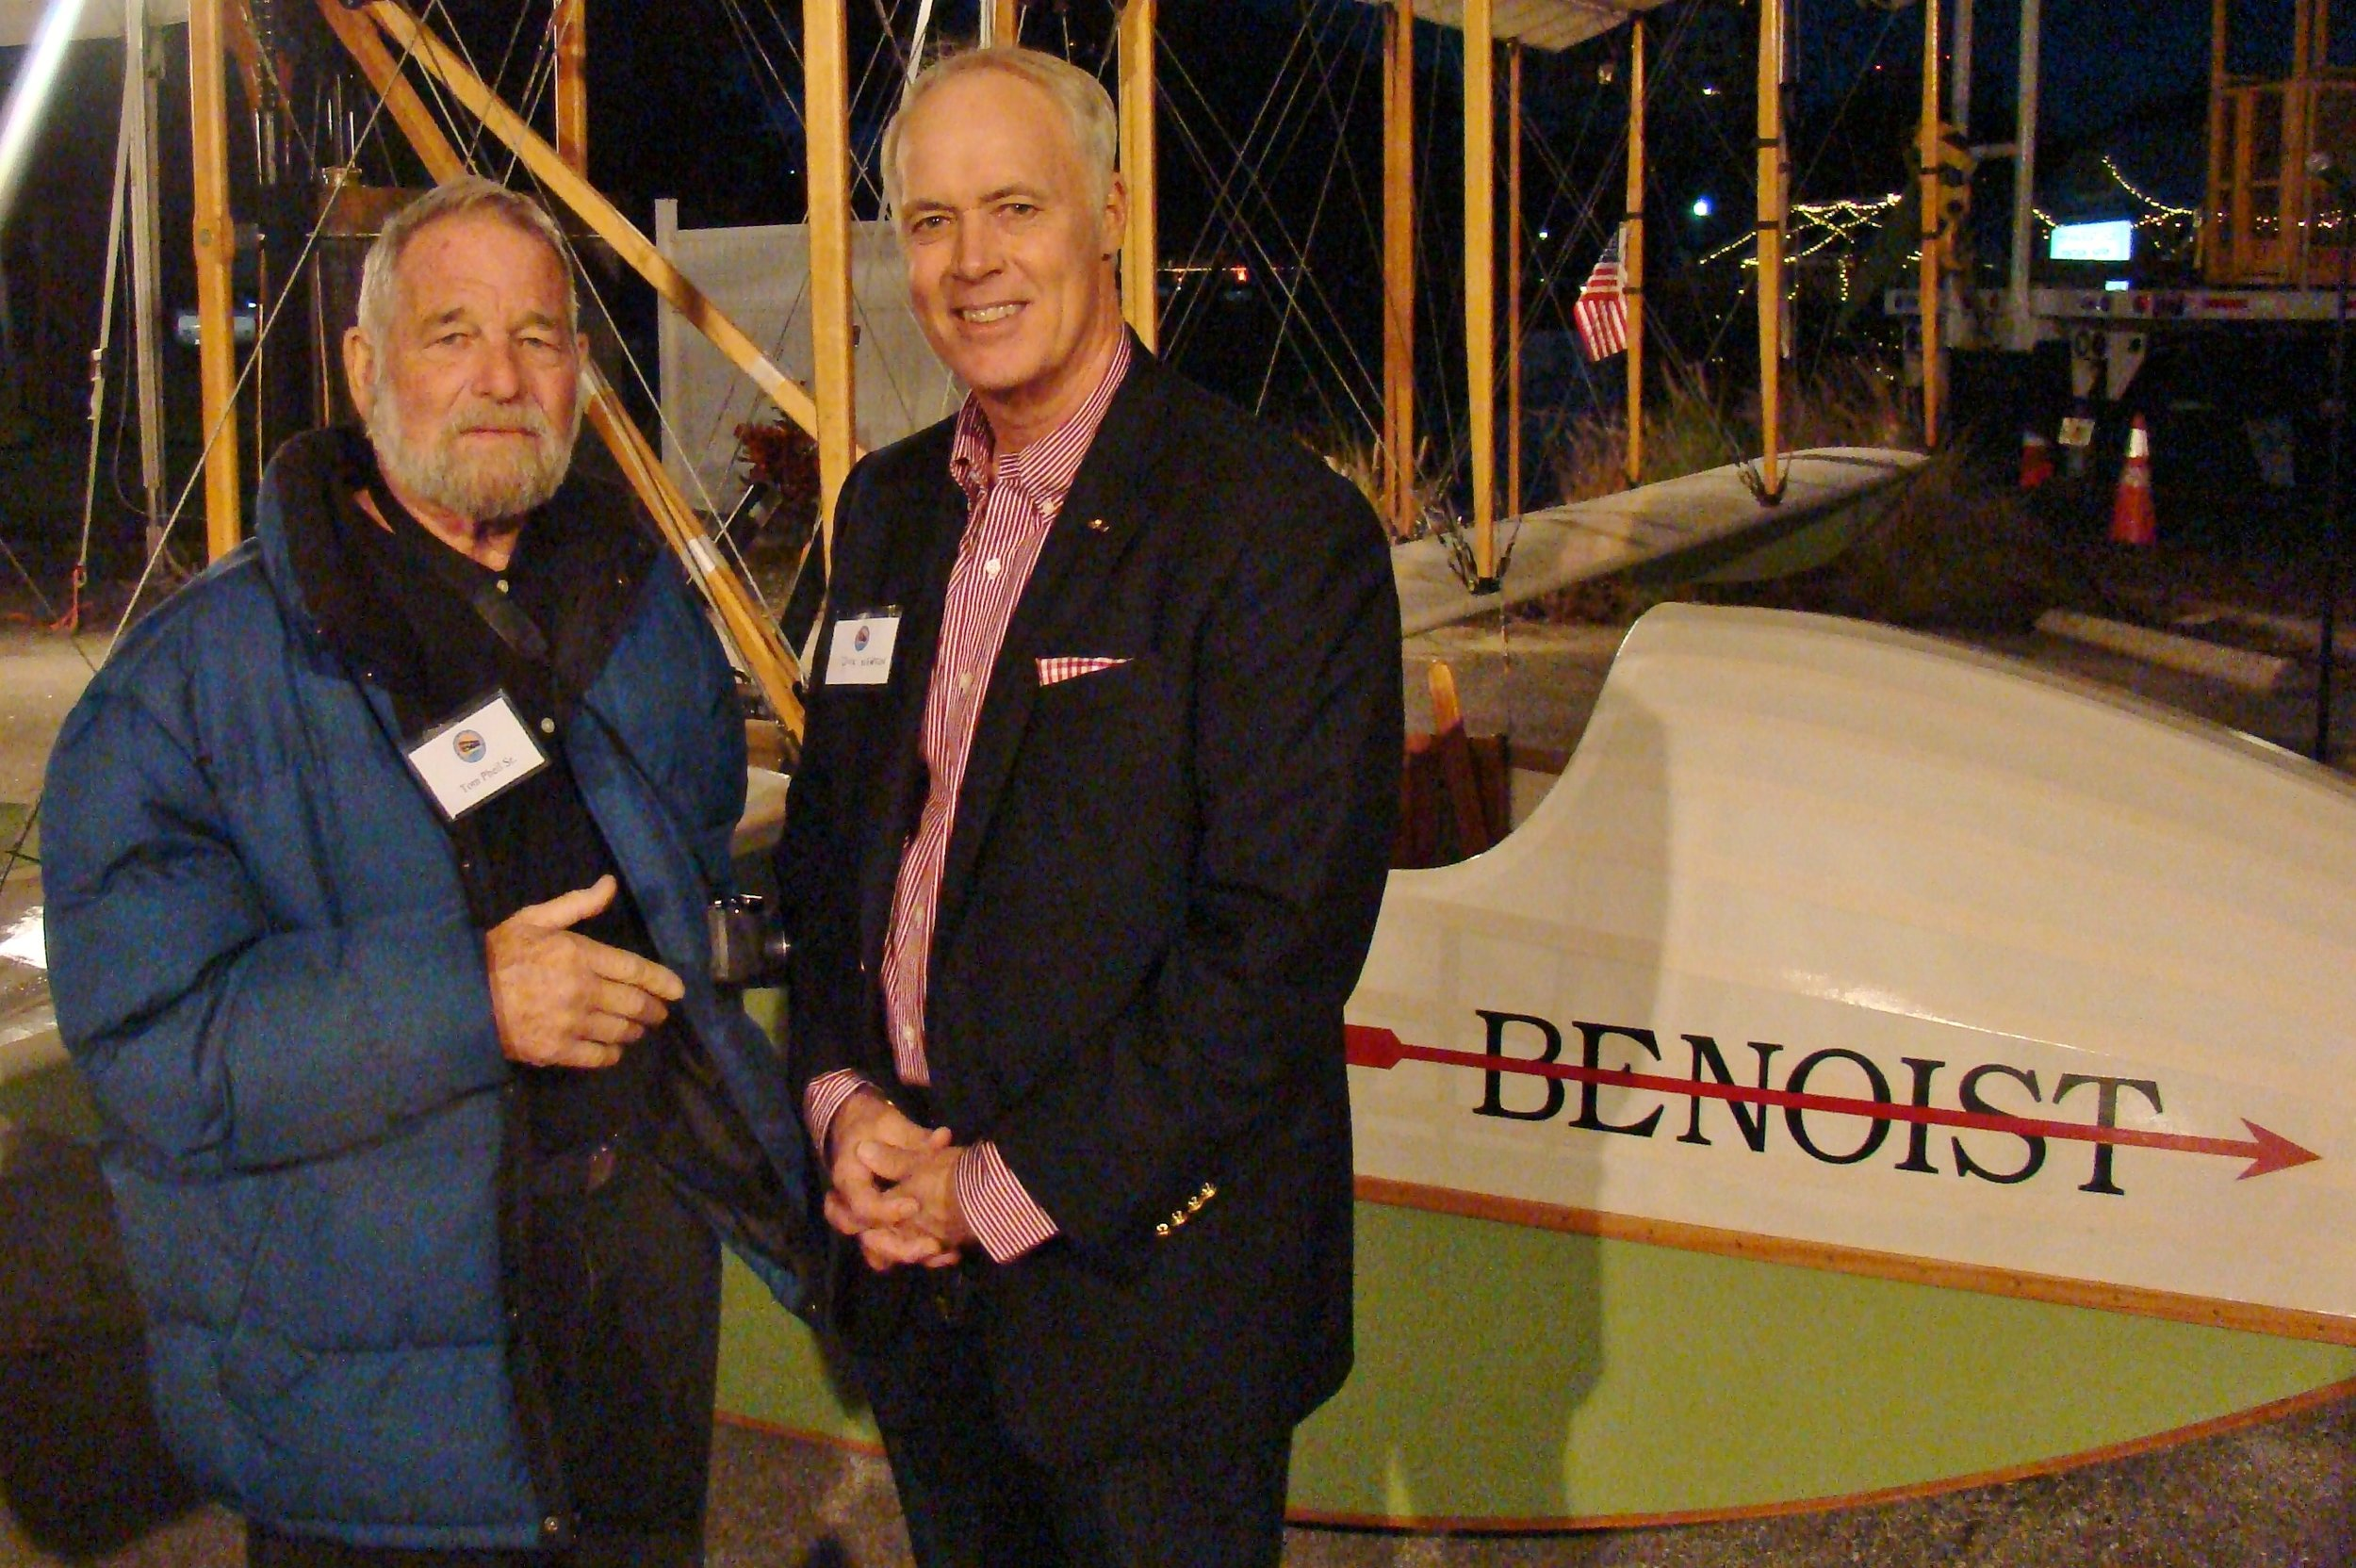 Tom Pheil, Sr. & Dick Newton, III by Benoist Airboat - 2, 31 Dec '13.JPG